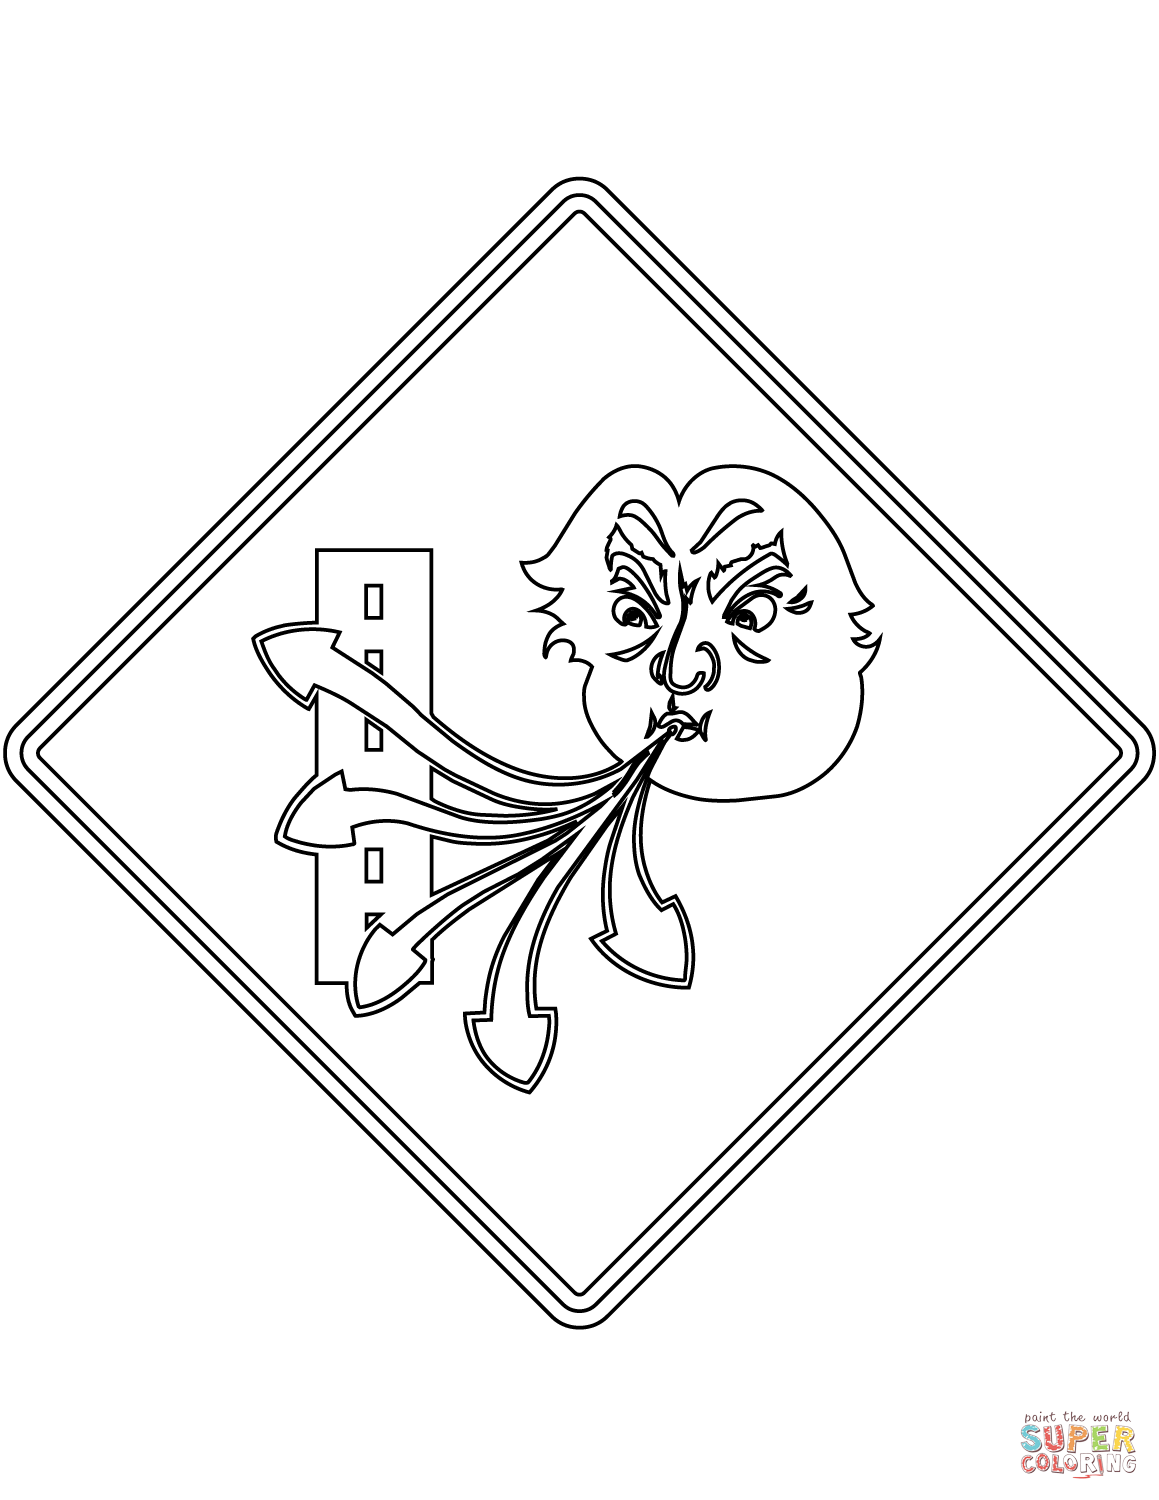 danger sign coloring page school advance warning outline clipart etc page sign coloring danger